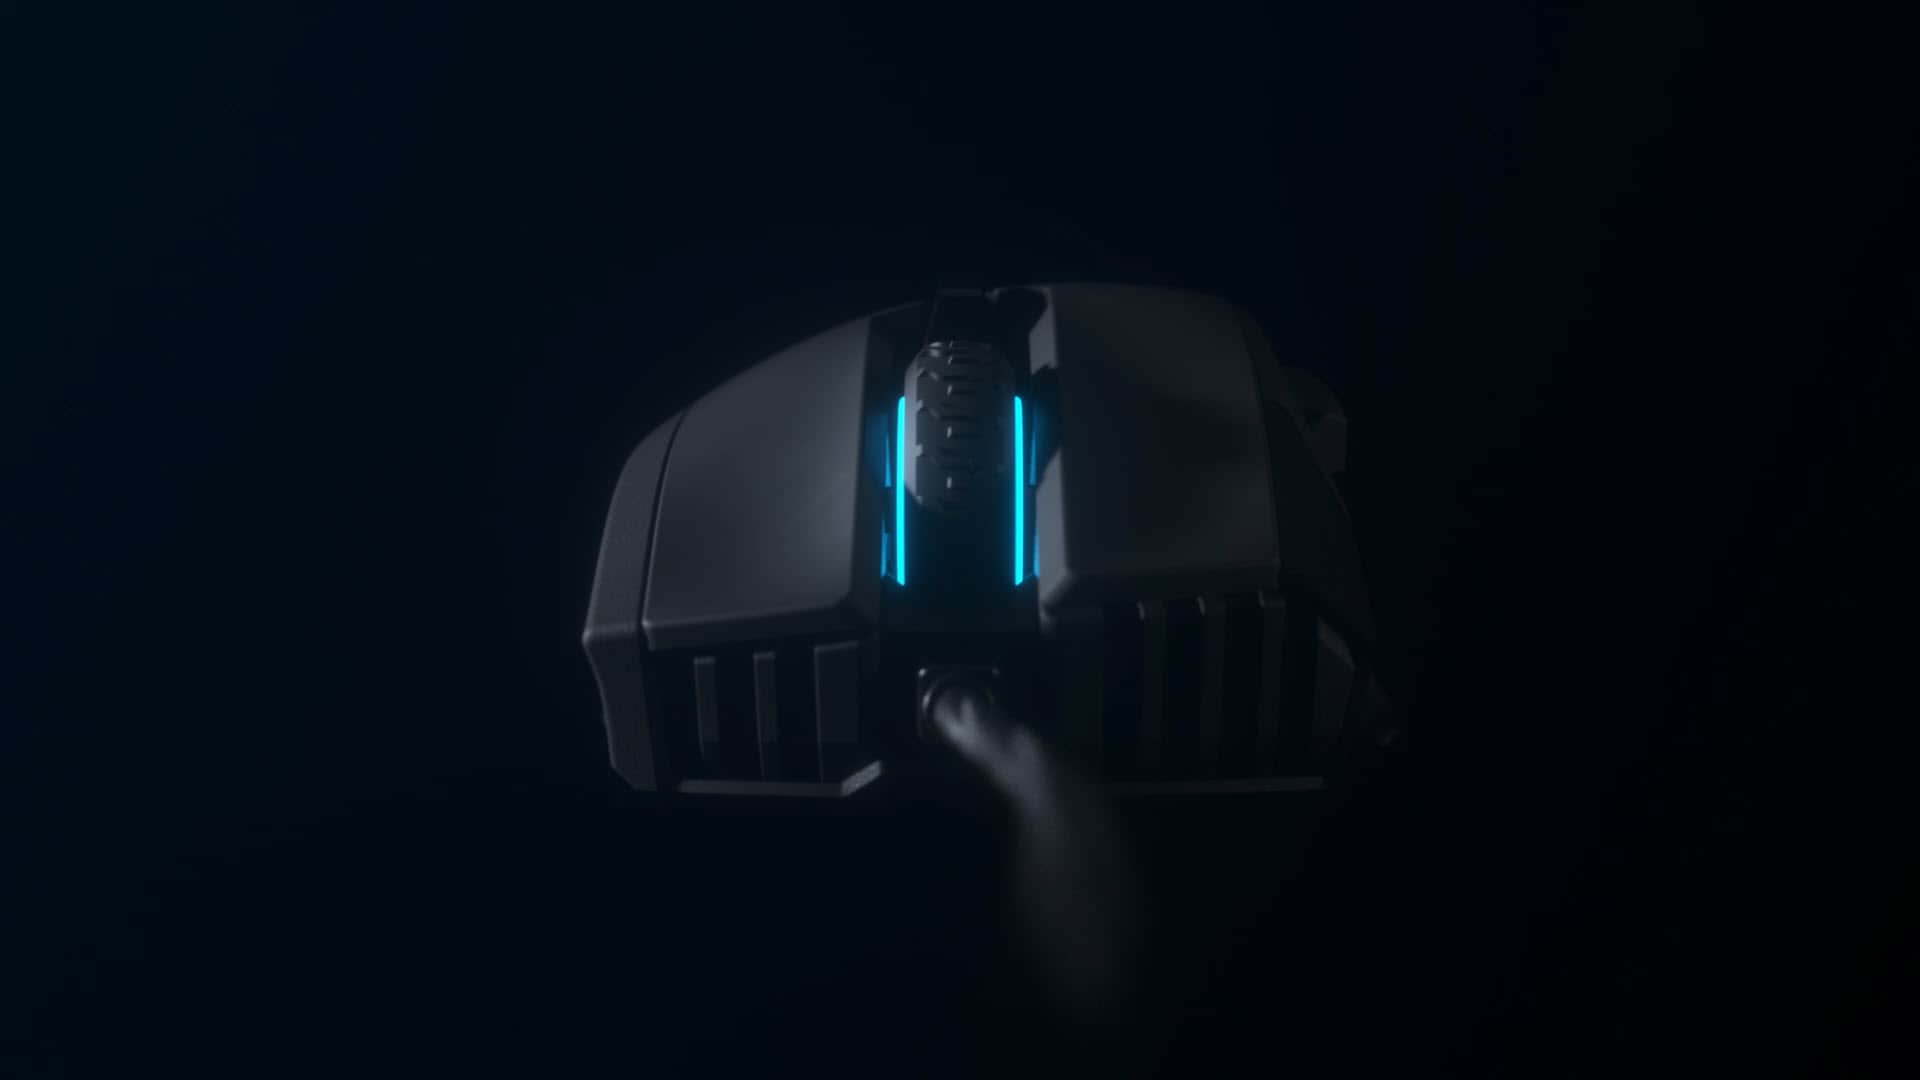 IRONCLAW RGB FPS/MOBA Gaming Mouse (EU)